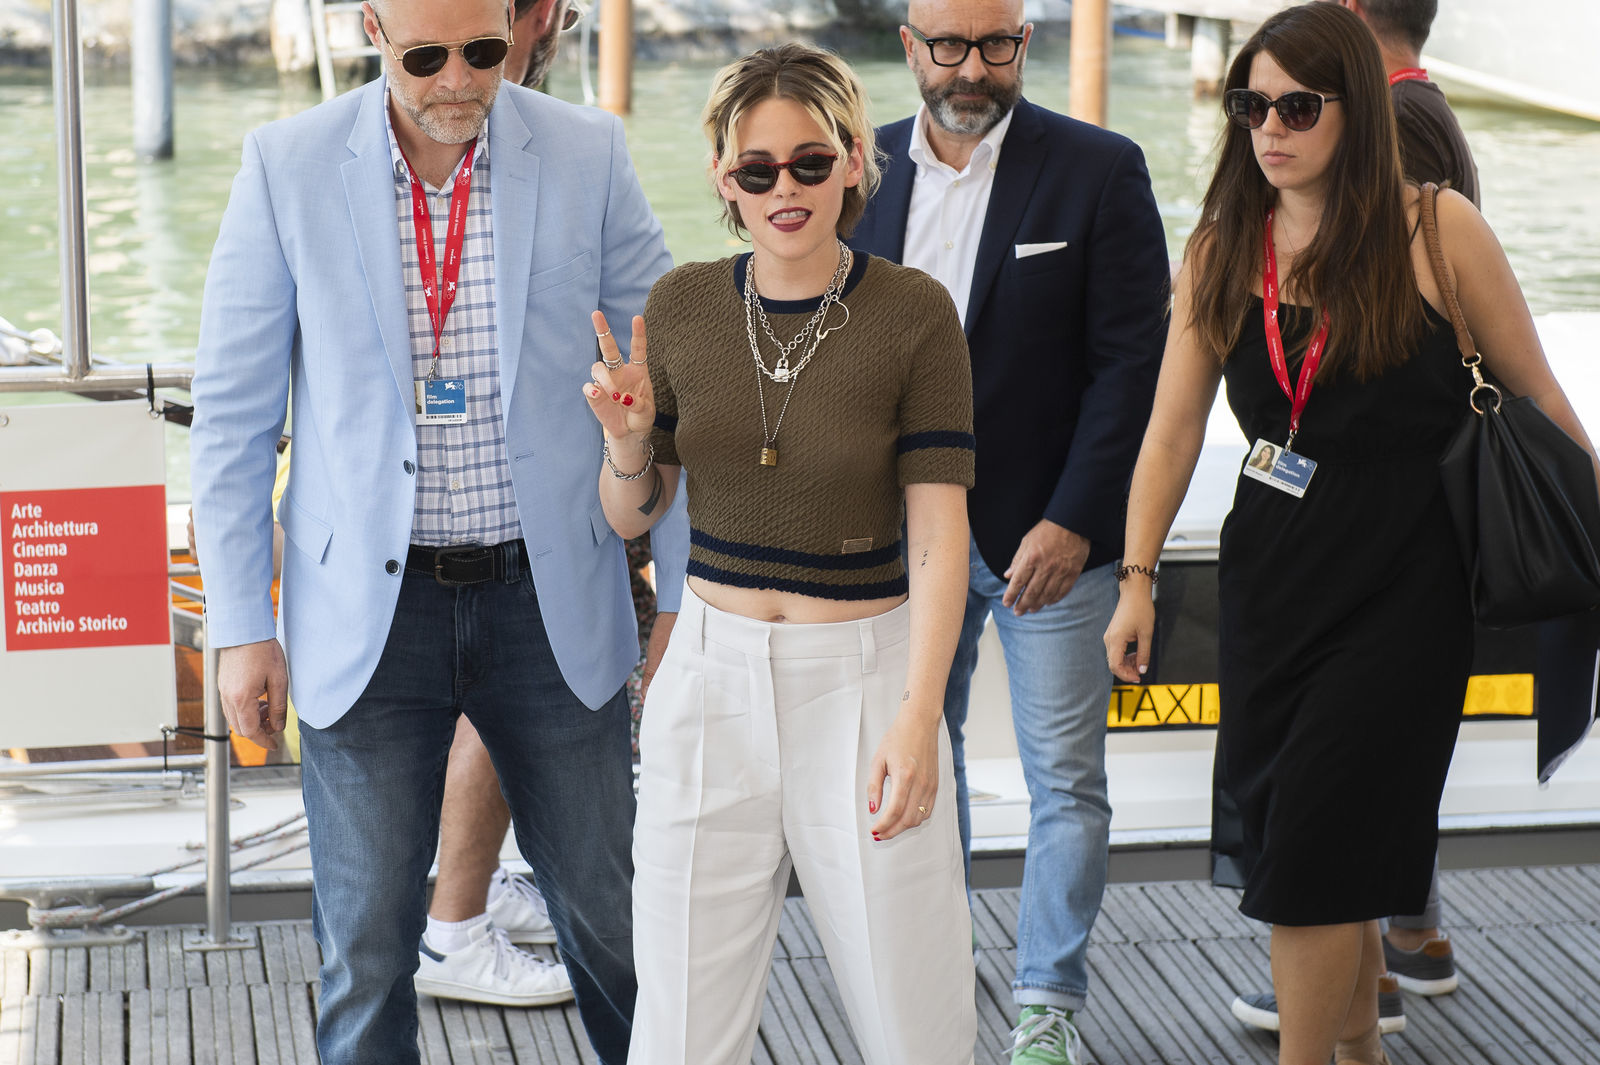 Actress Kristen Stewart gestures to photographers upon arrival for the photo call of the film 'Seberg' at the 76th edition of the Venice Film Festival in Venice, Italy, Friday, Aug. 30, 2019. (Photo by Arthur Mola/Invision/AP)